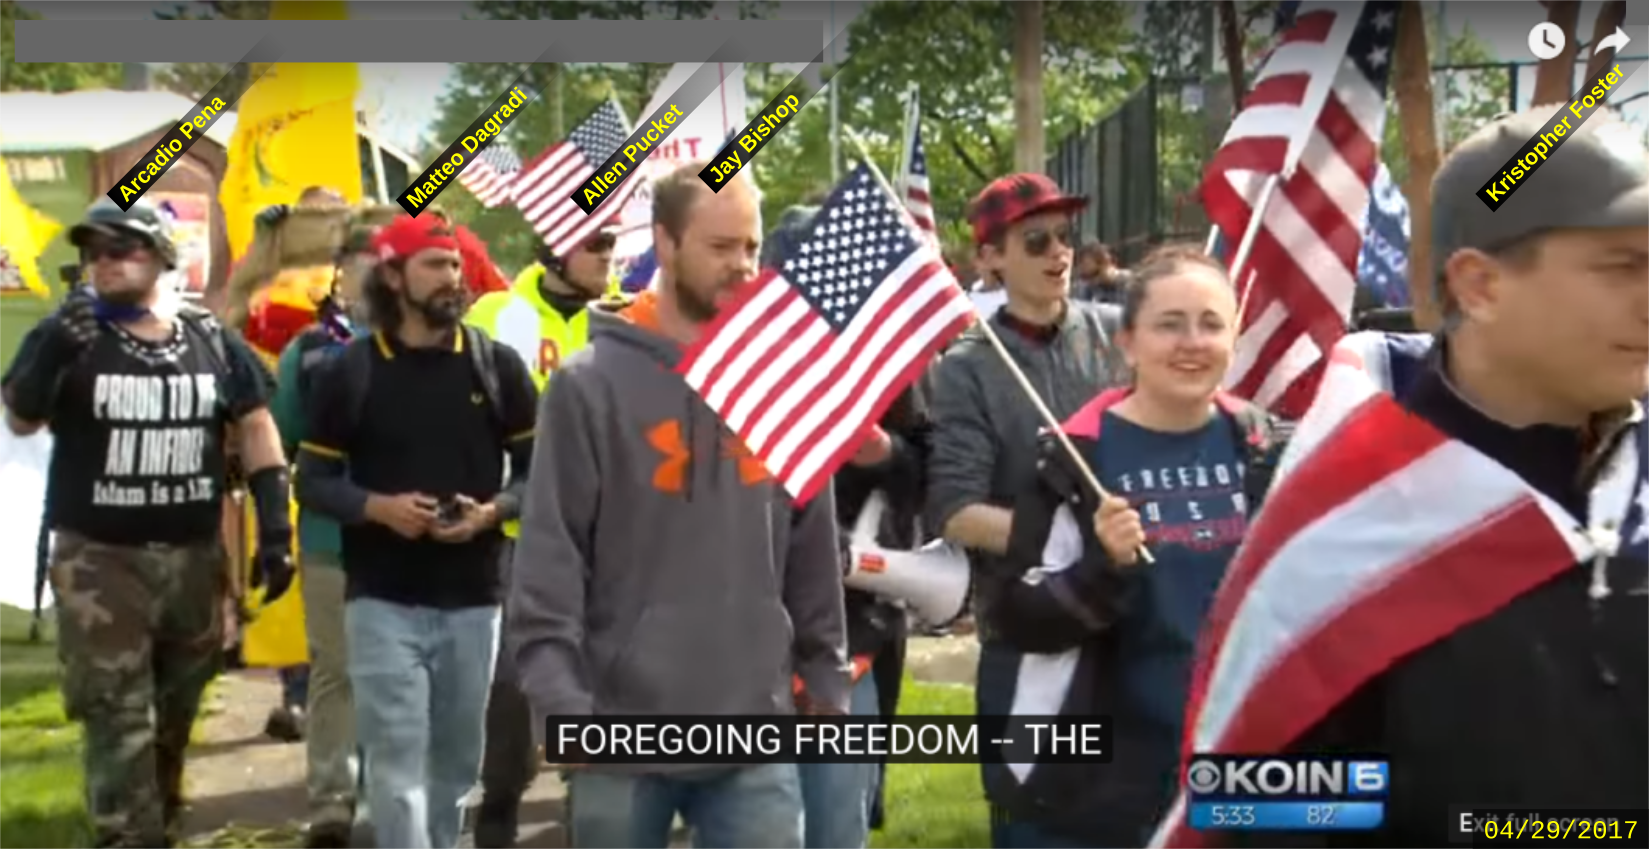 Matteo Dagradi attends a Patriot Prayer rally with fascists